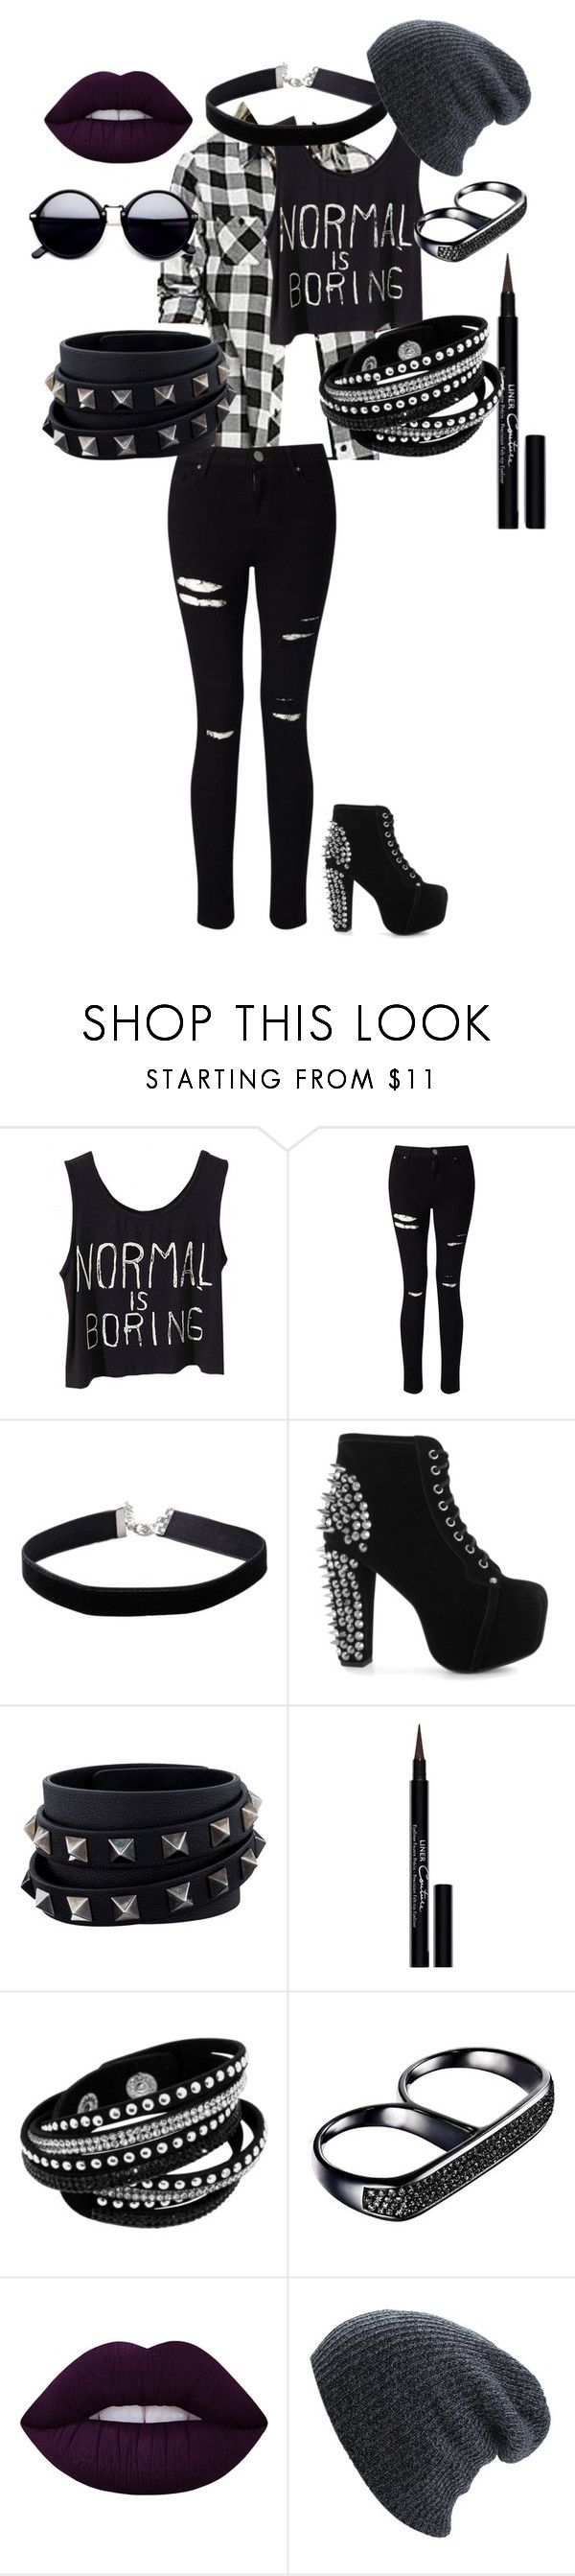 """back to school"" by styleseverything on Polyvore featuring Miss Selfridge, Jeffrey Campbell, Valentino, Givenchy, AS29, Lime Crime, BackToSchool and goth"